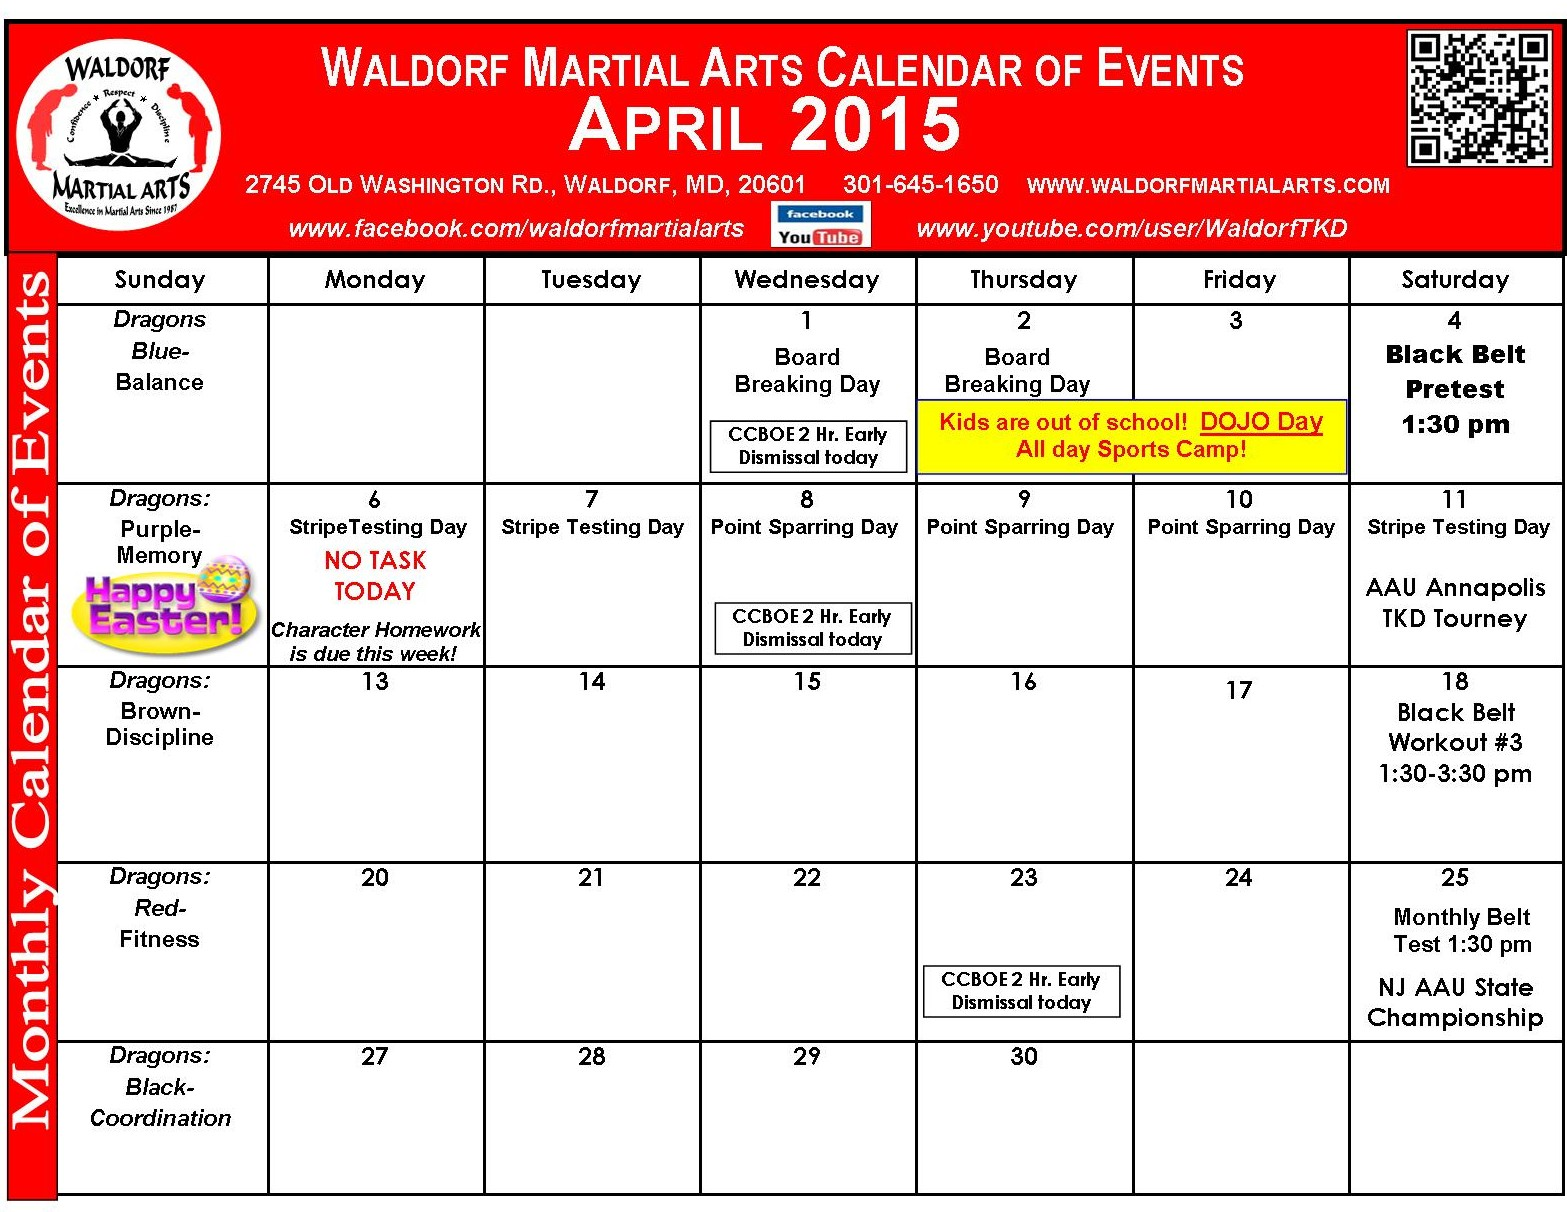 April 2015 Calendar of Events